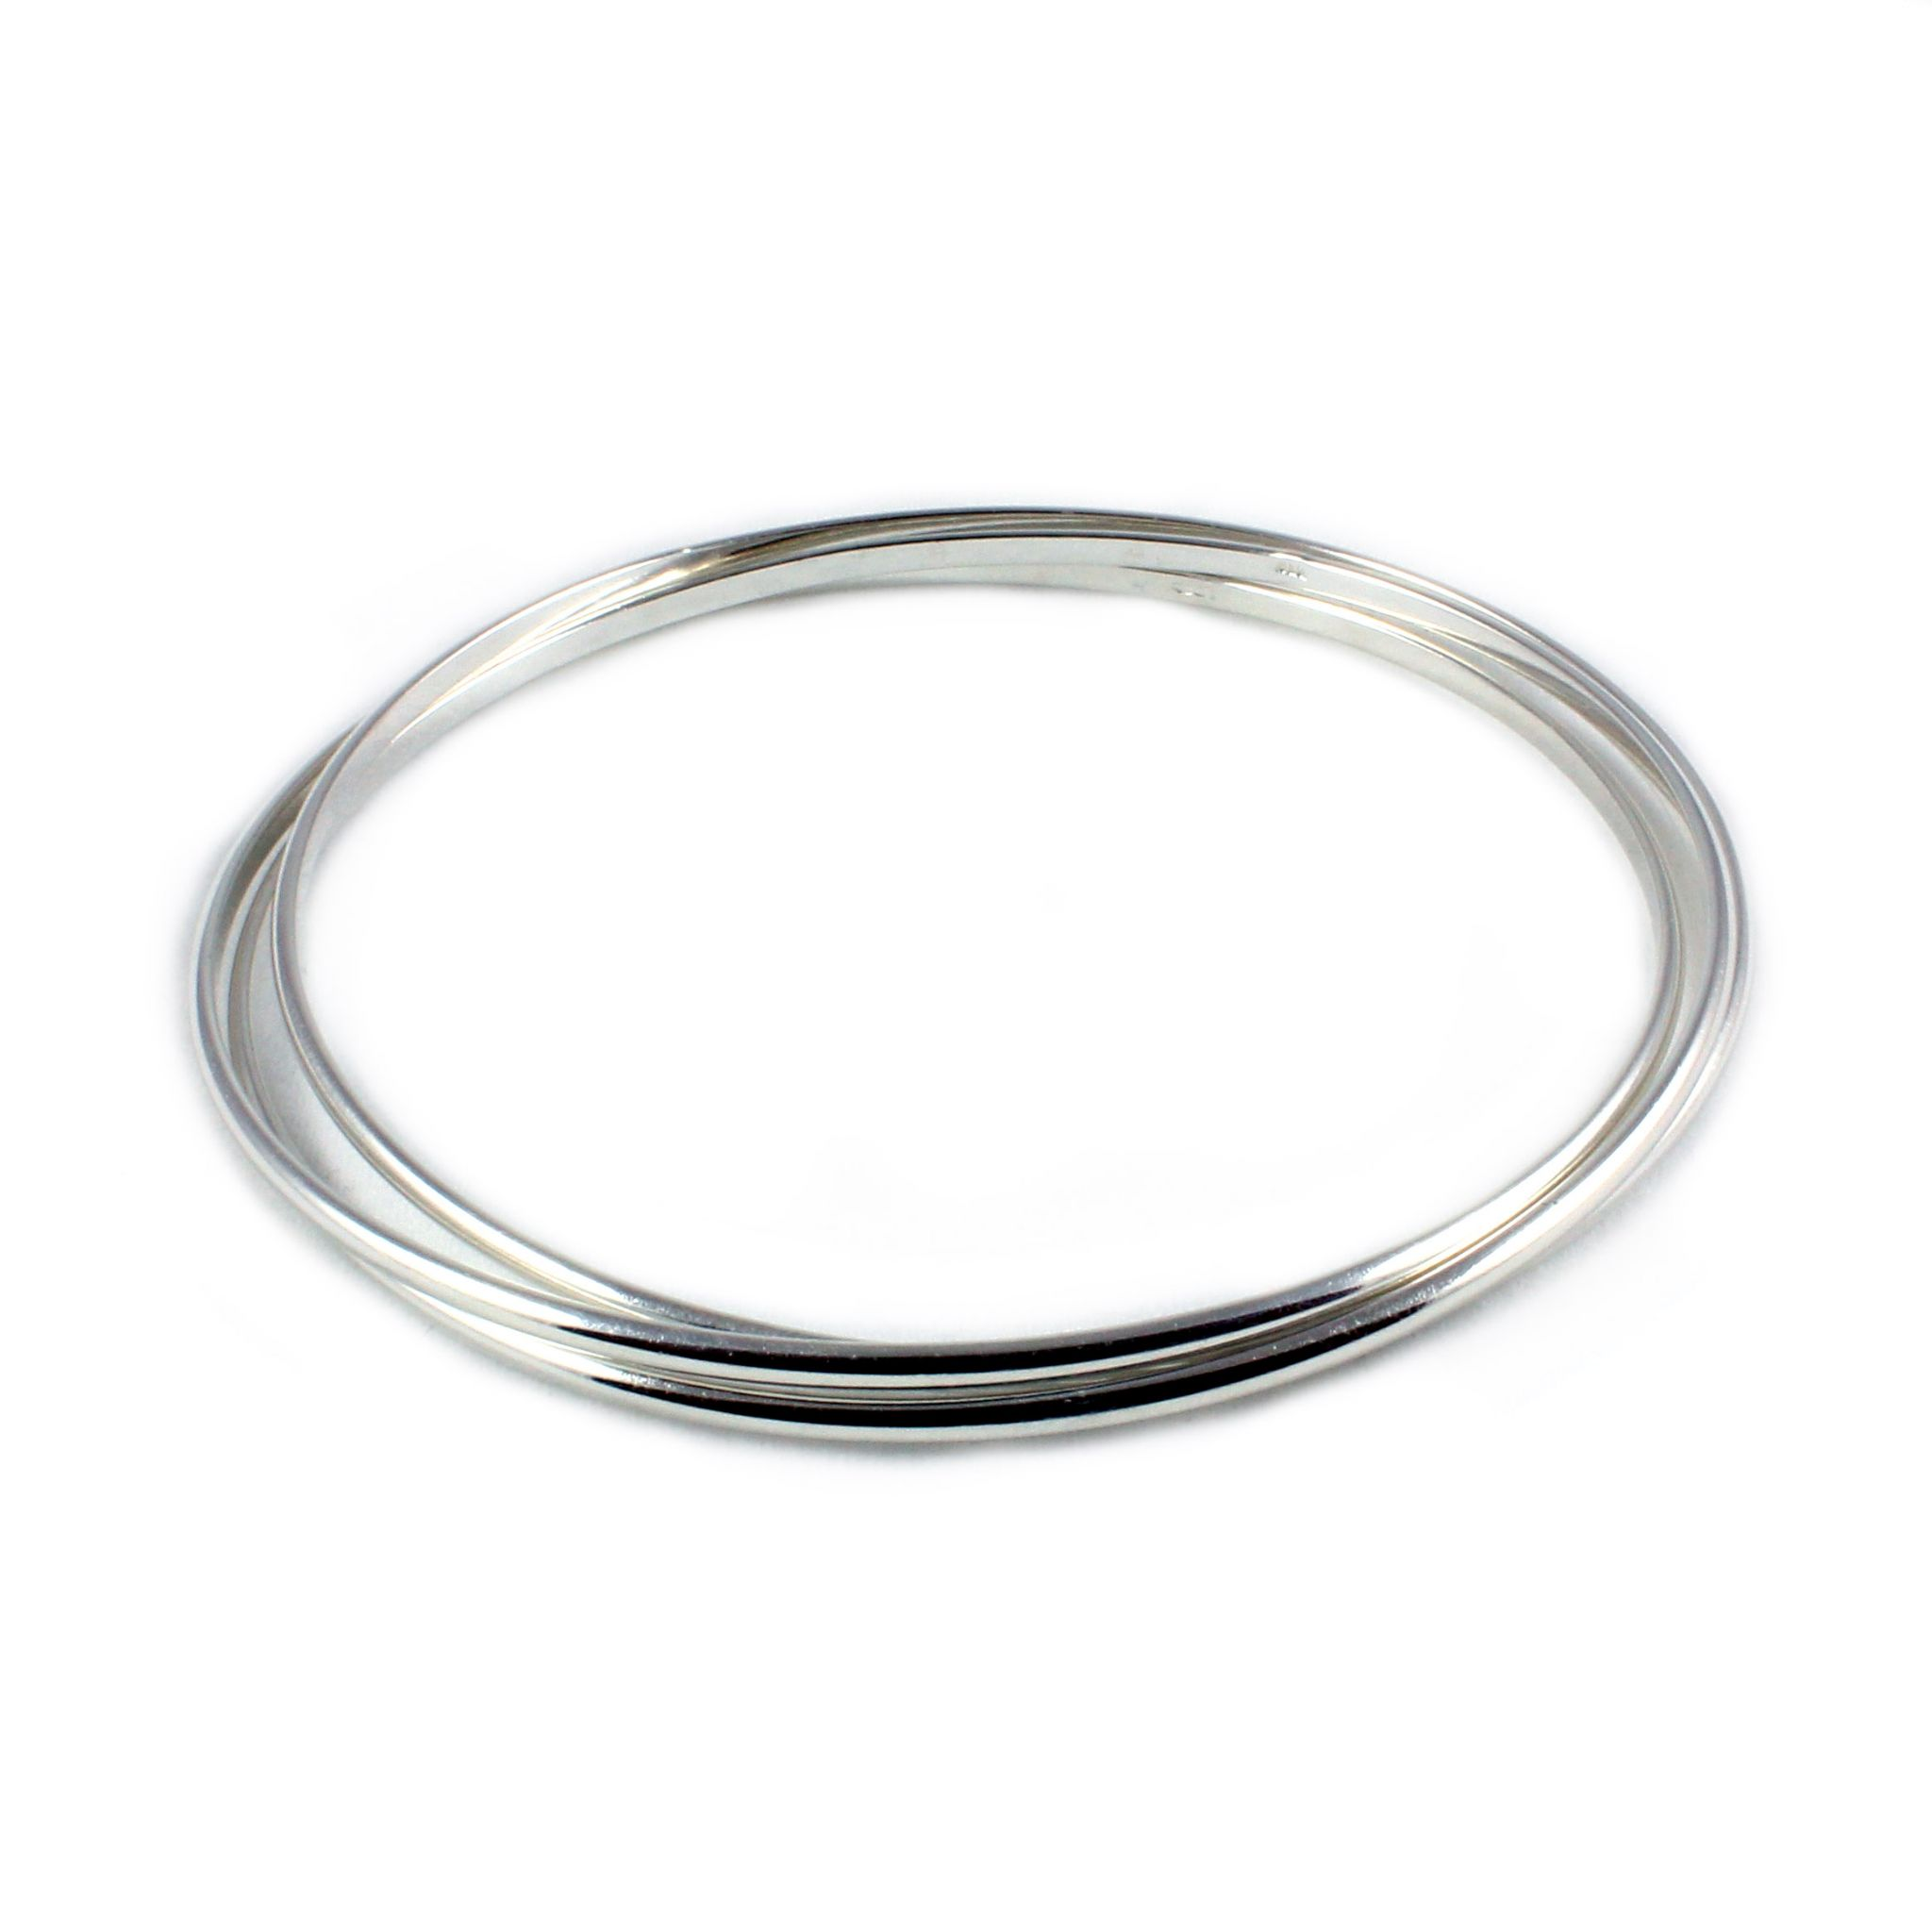 plain bangles sterling bangle a silver kadas kada bracelet jewellery oxidized